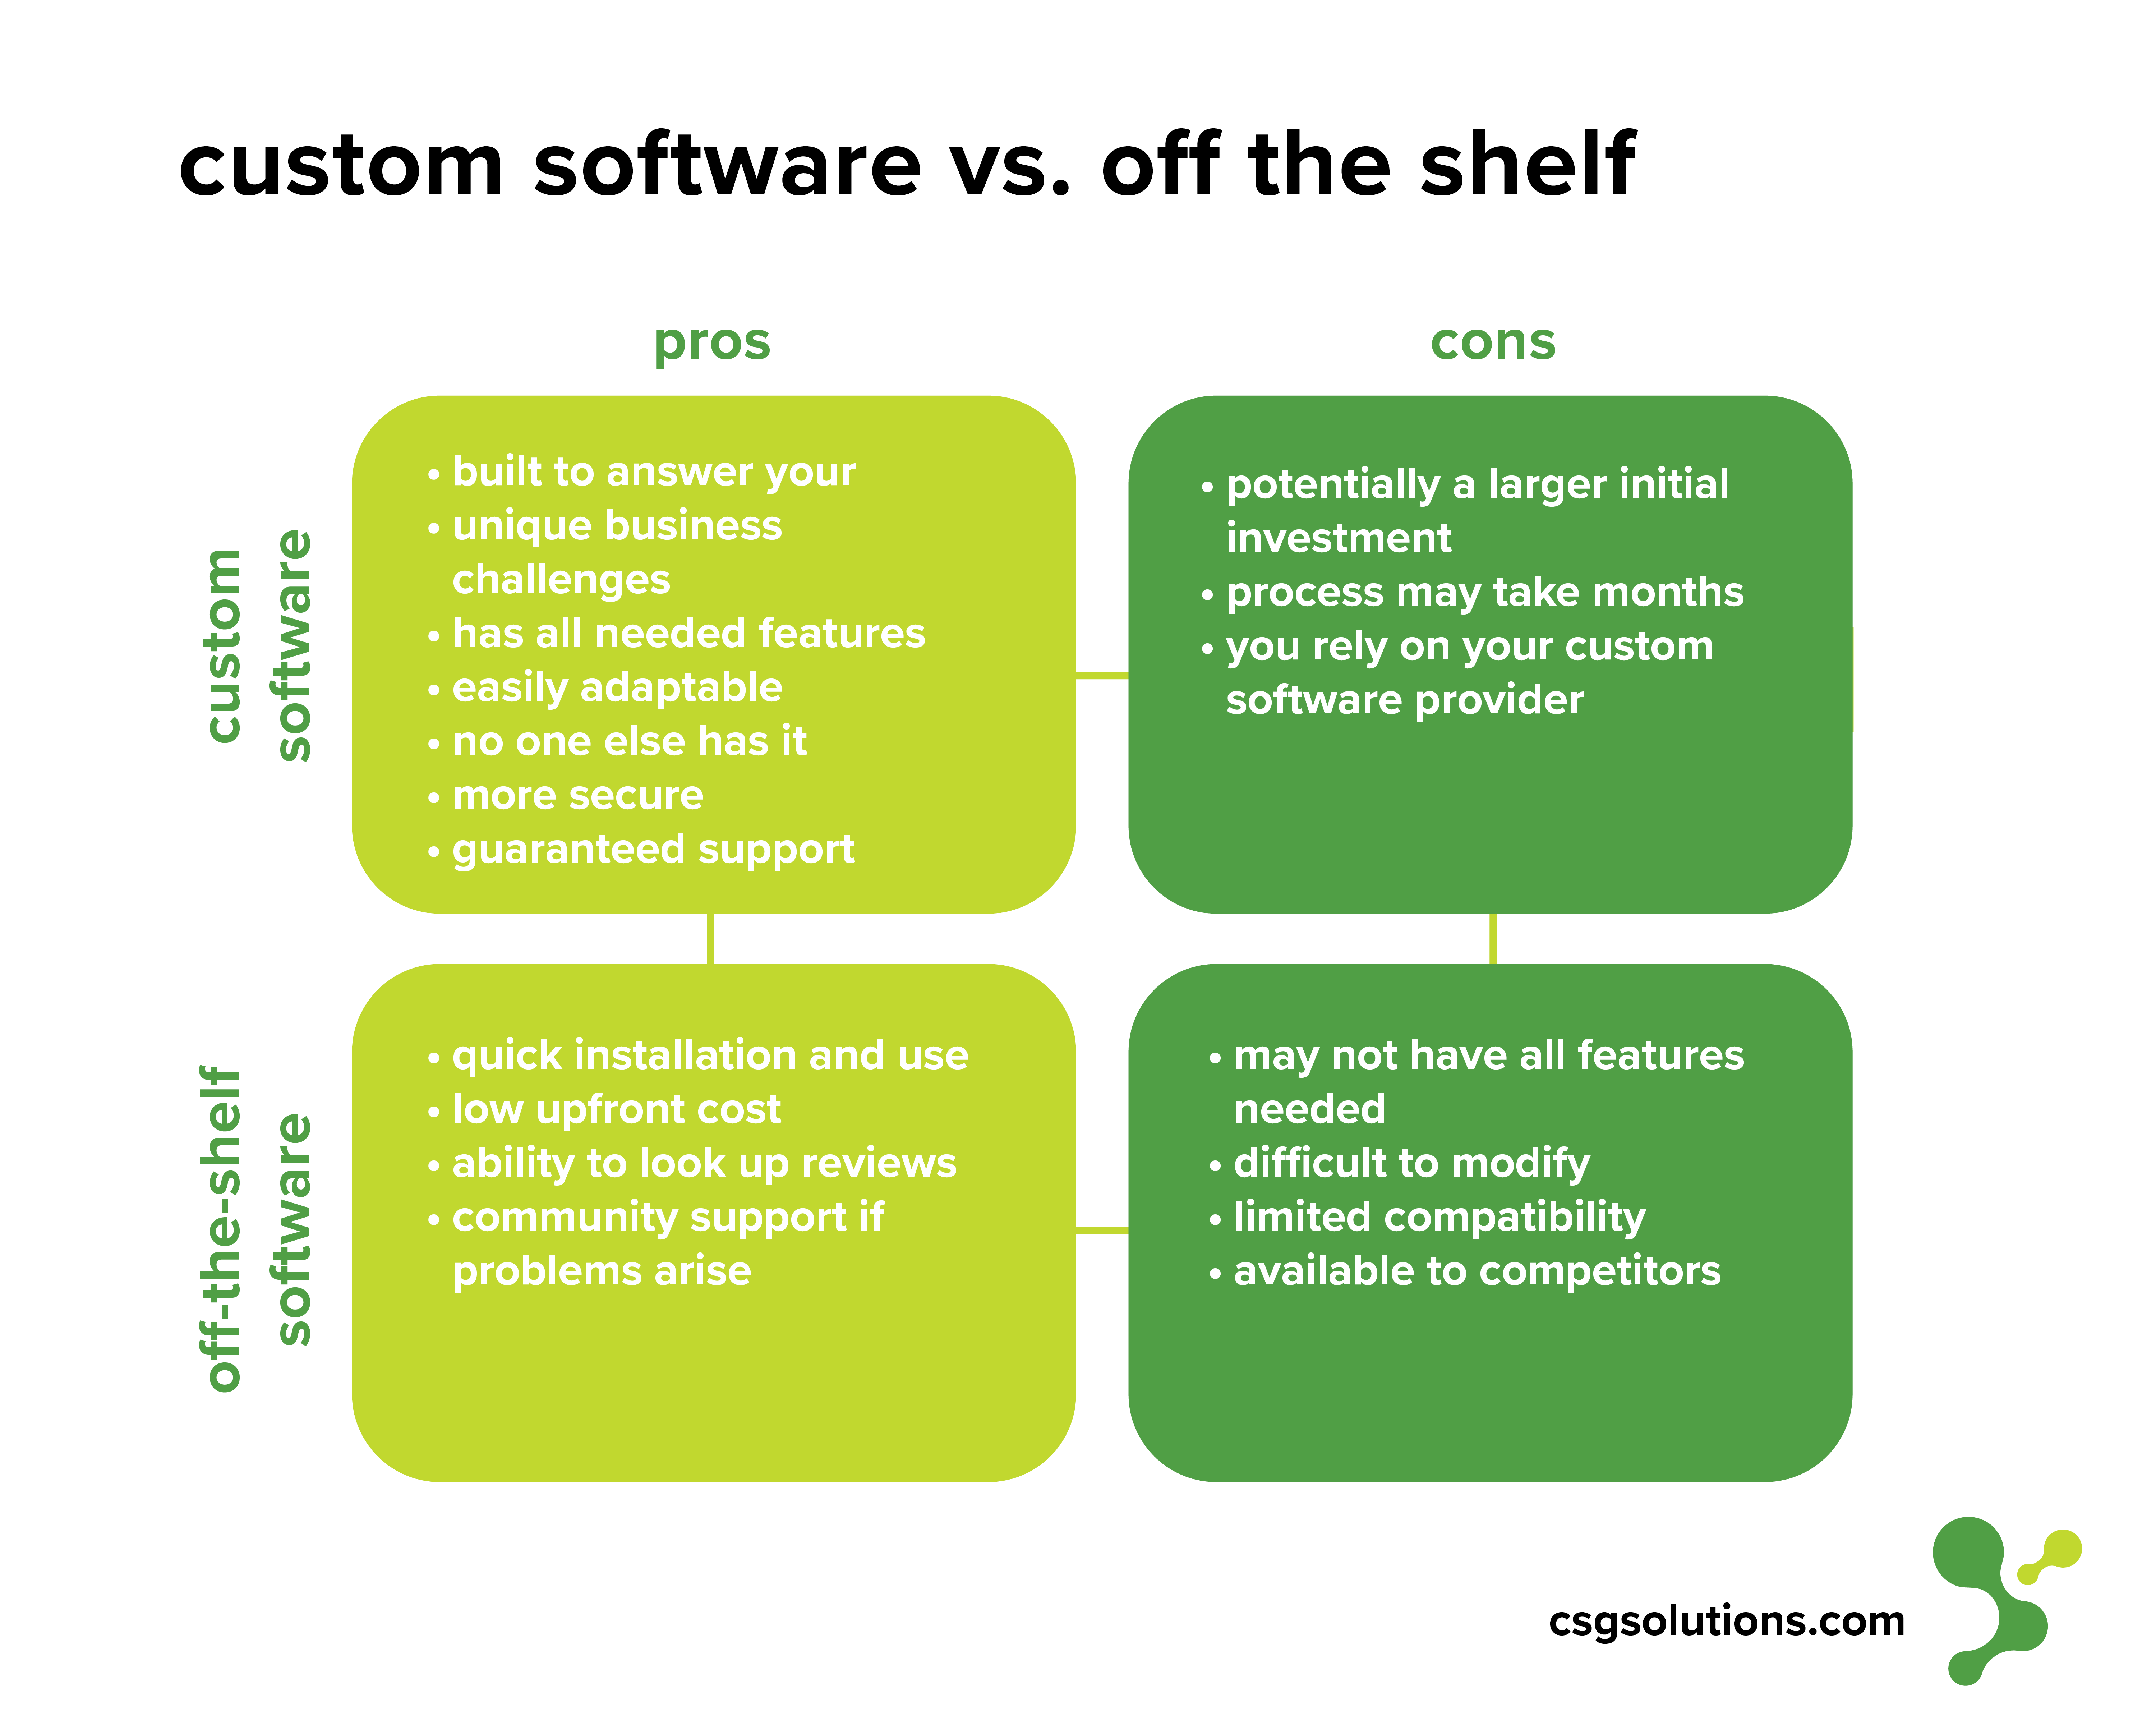 Custom Software Pros and Cons